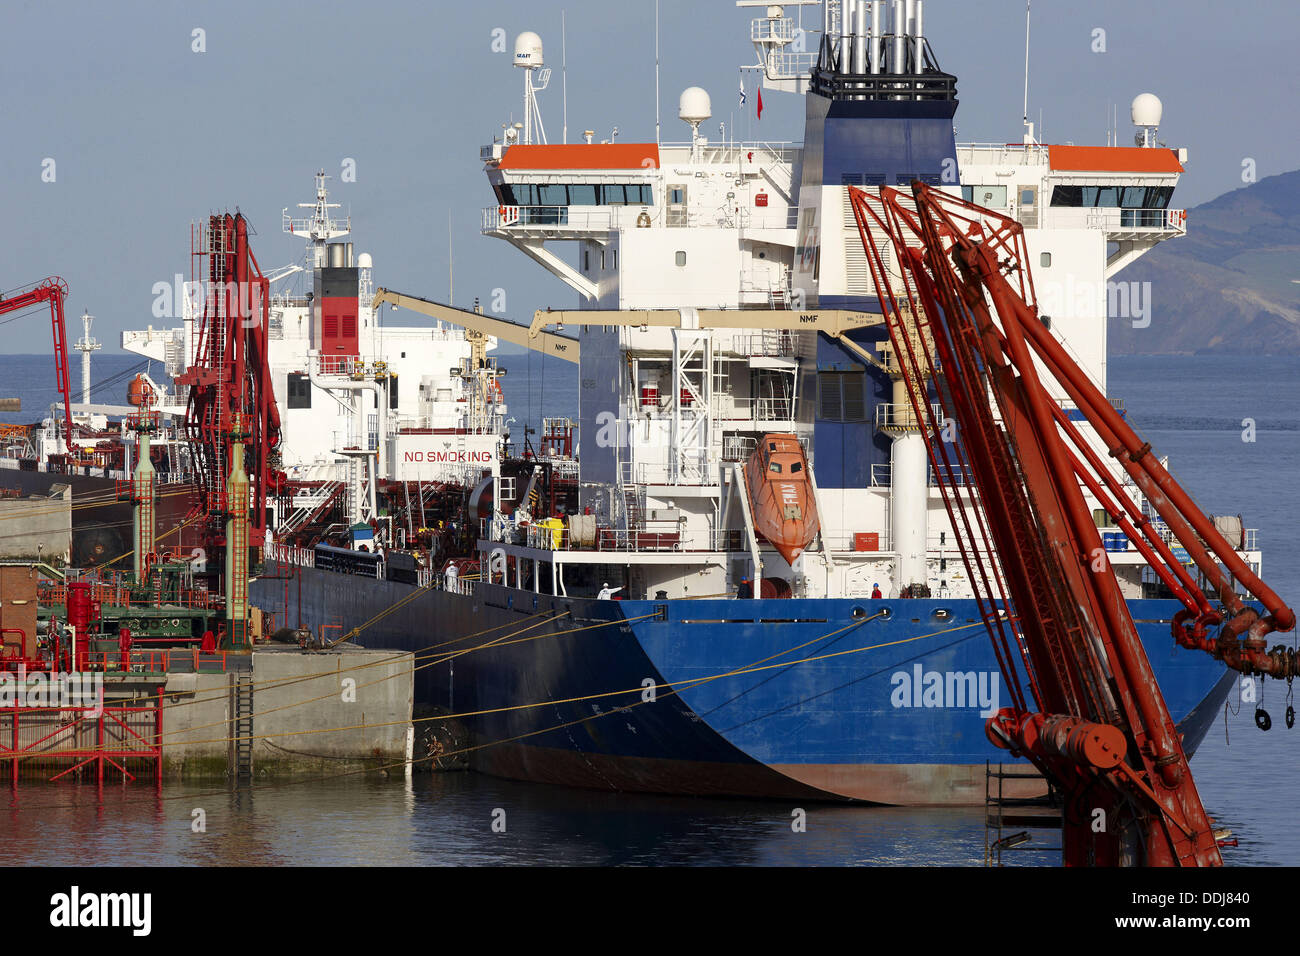 Tanker. Port of Bilbao, Biscay, Basque Country, Spain - Stock Image